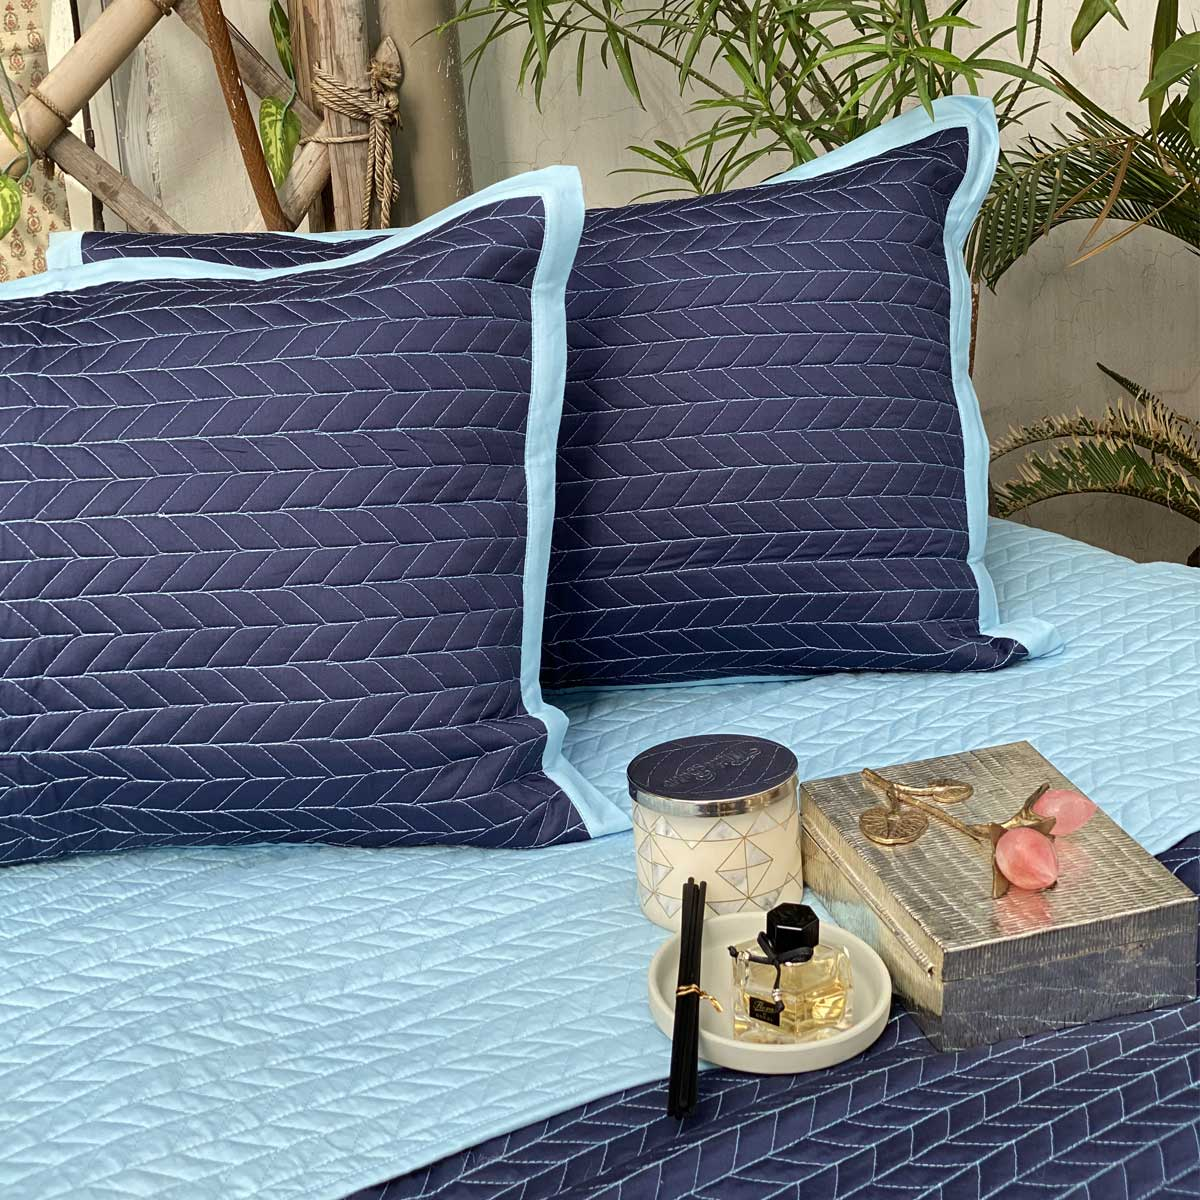 Beautiful Bedspreads of Convenience and Joy